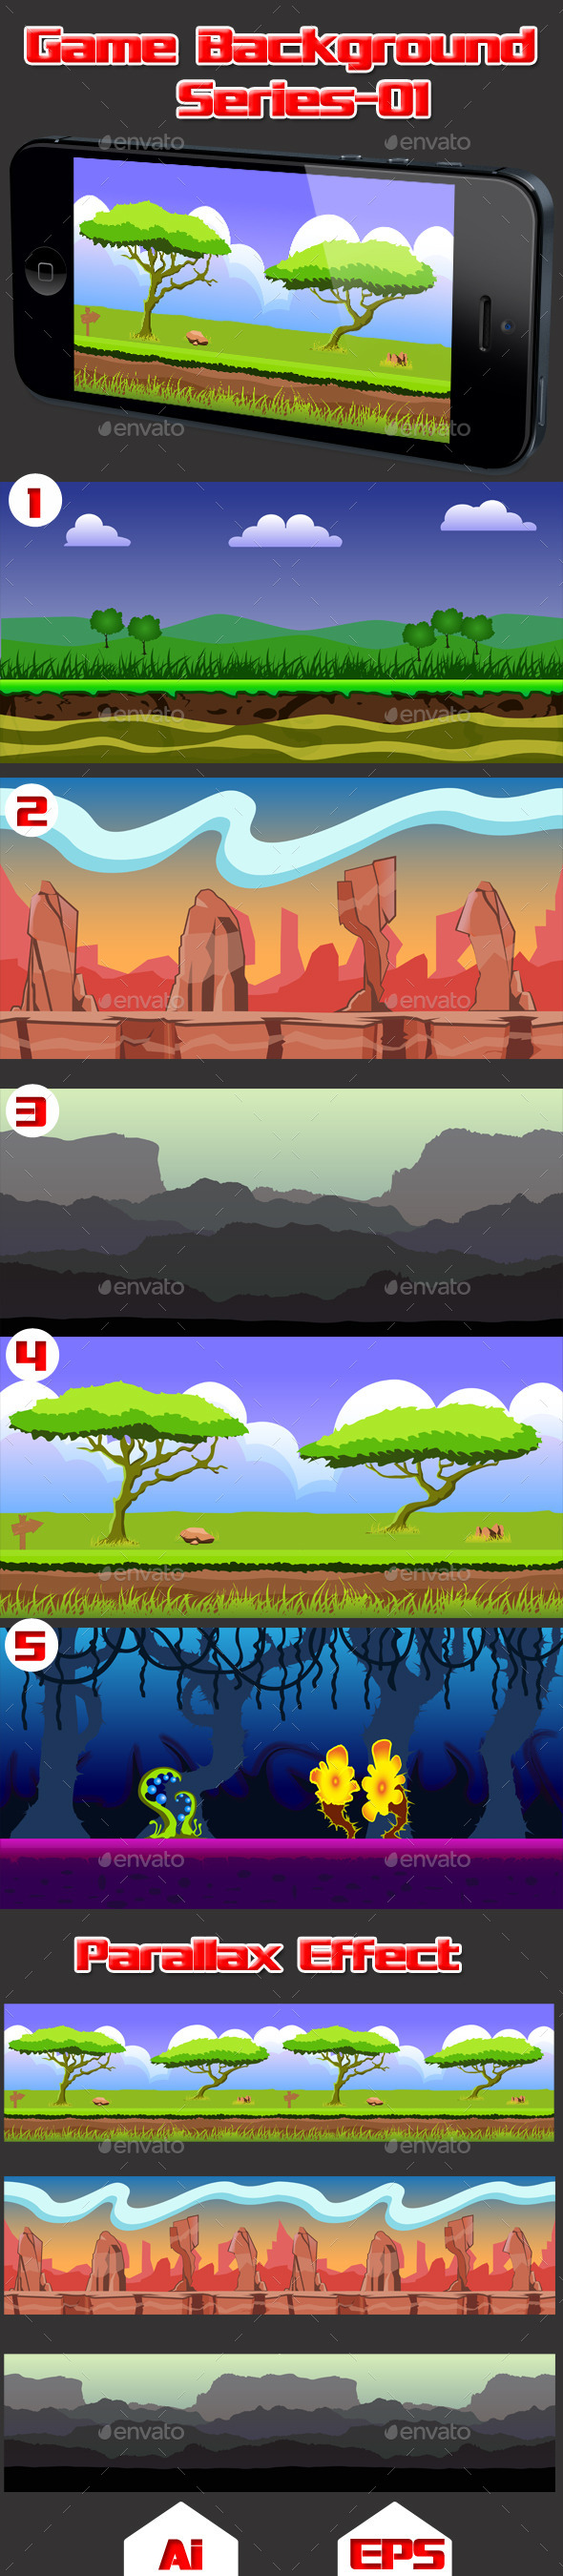 Game Background Series-01 - Backgrounds Game Assets